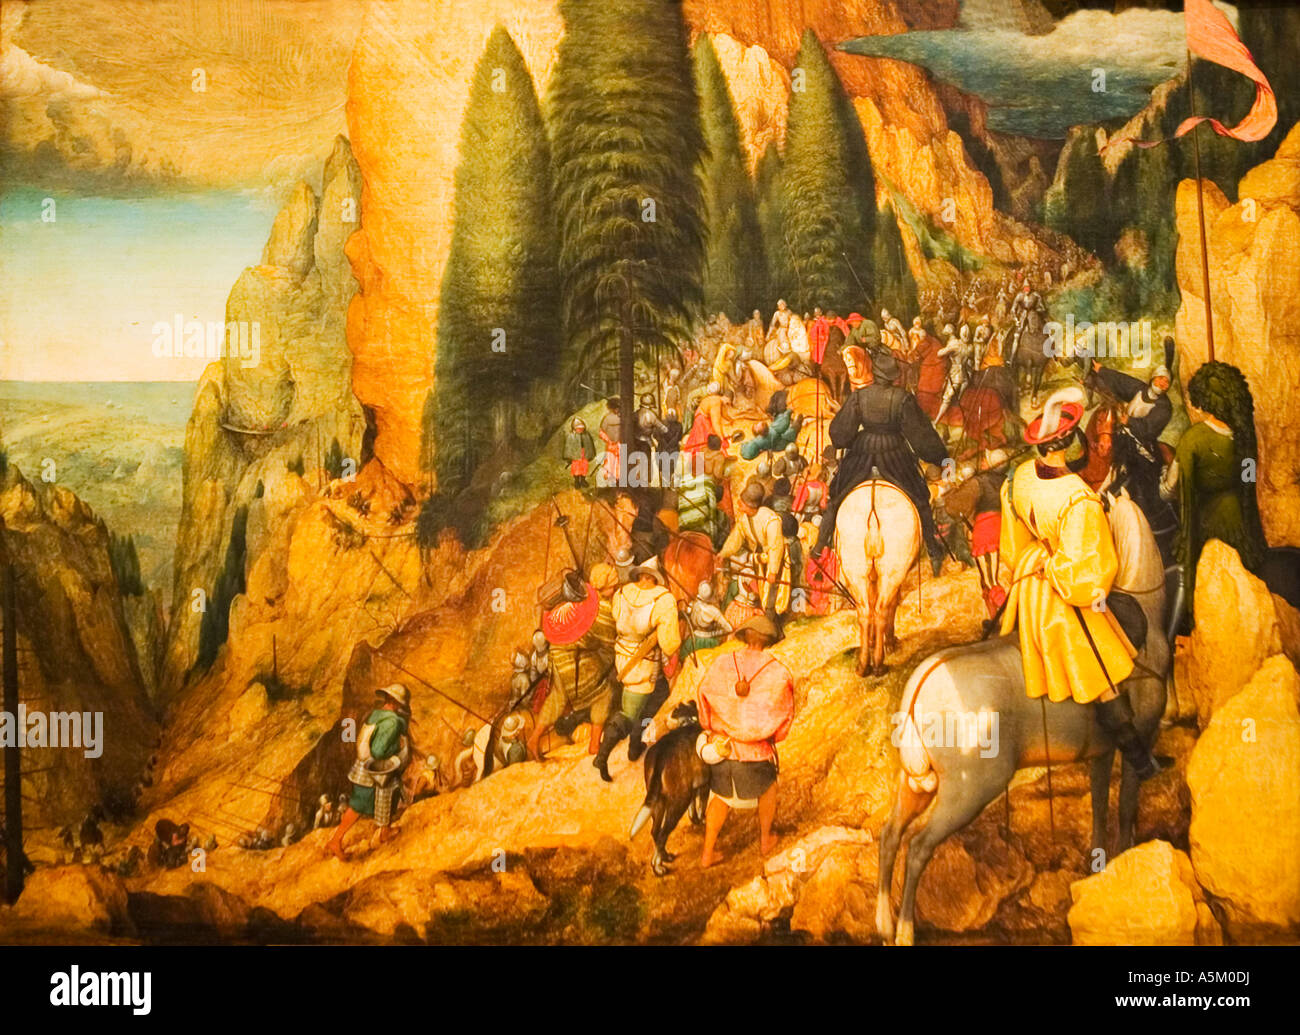 Conversion of St. Paul painted by Pieter Bruegel the Elder in 1567 in the Fine Art Kunsthistorisches Museum Vienna - Stock Image